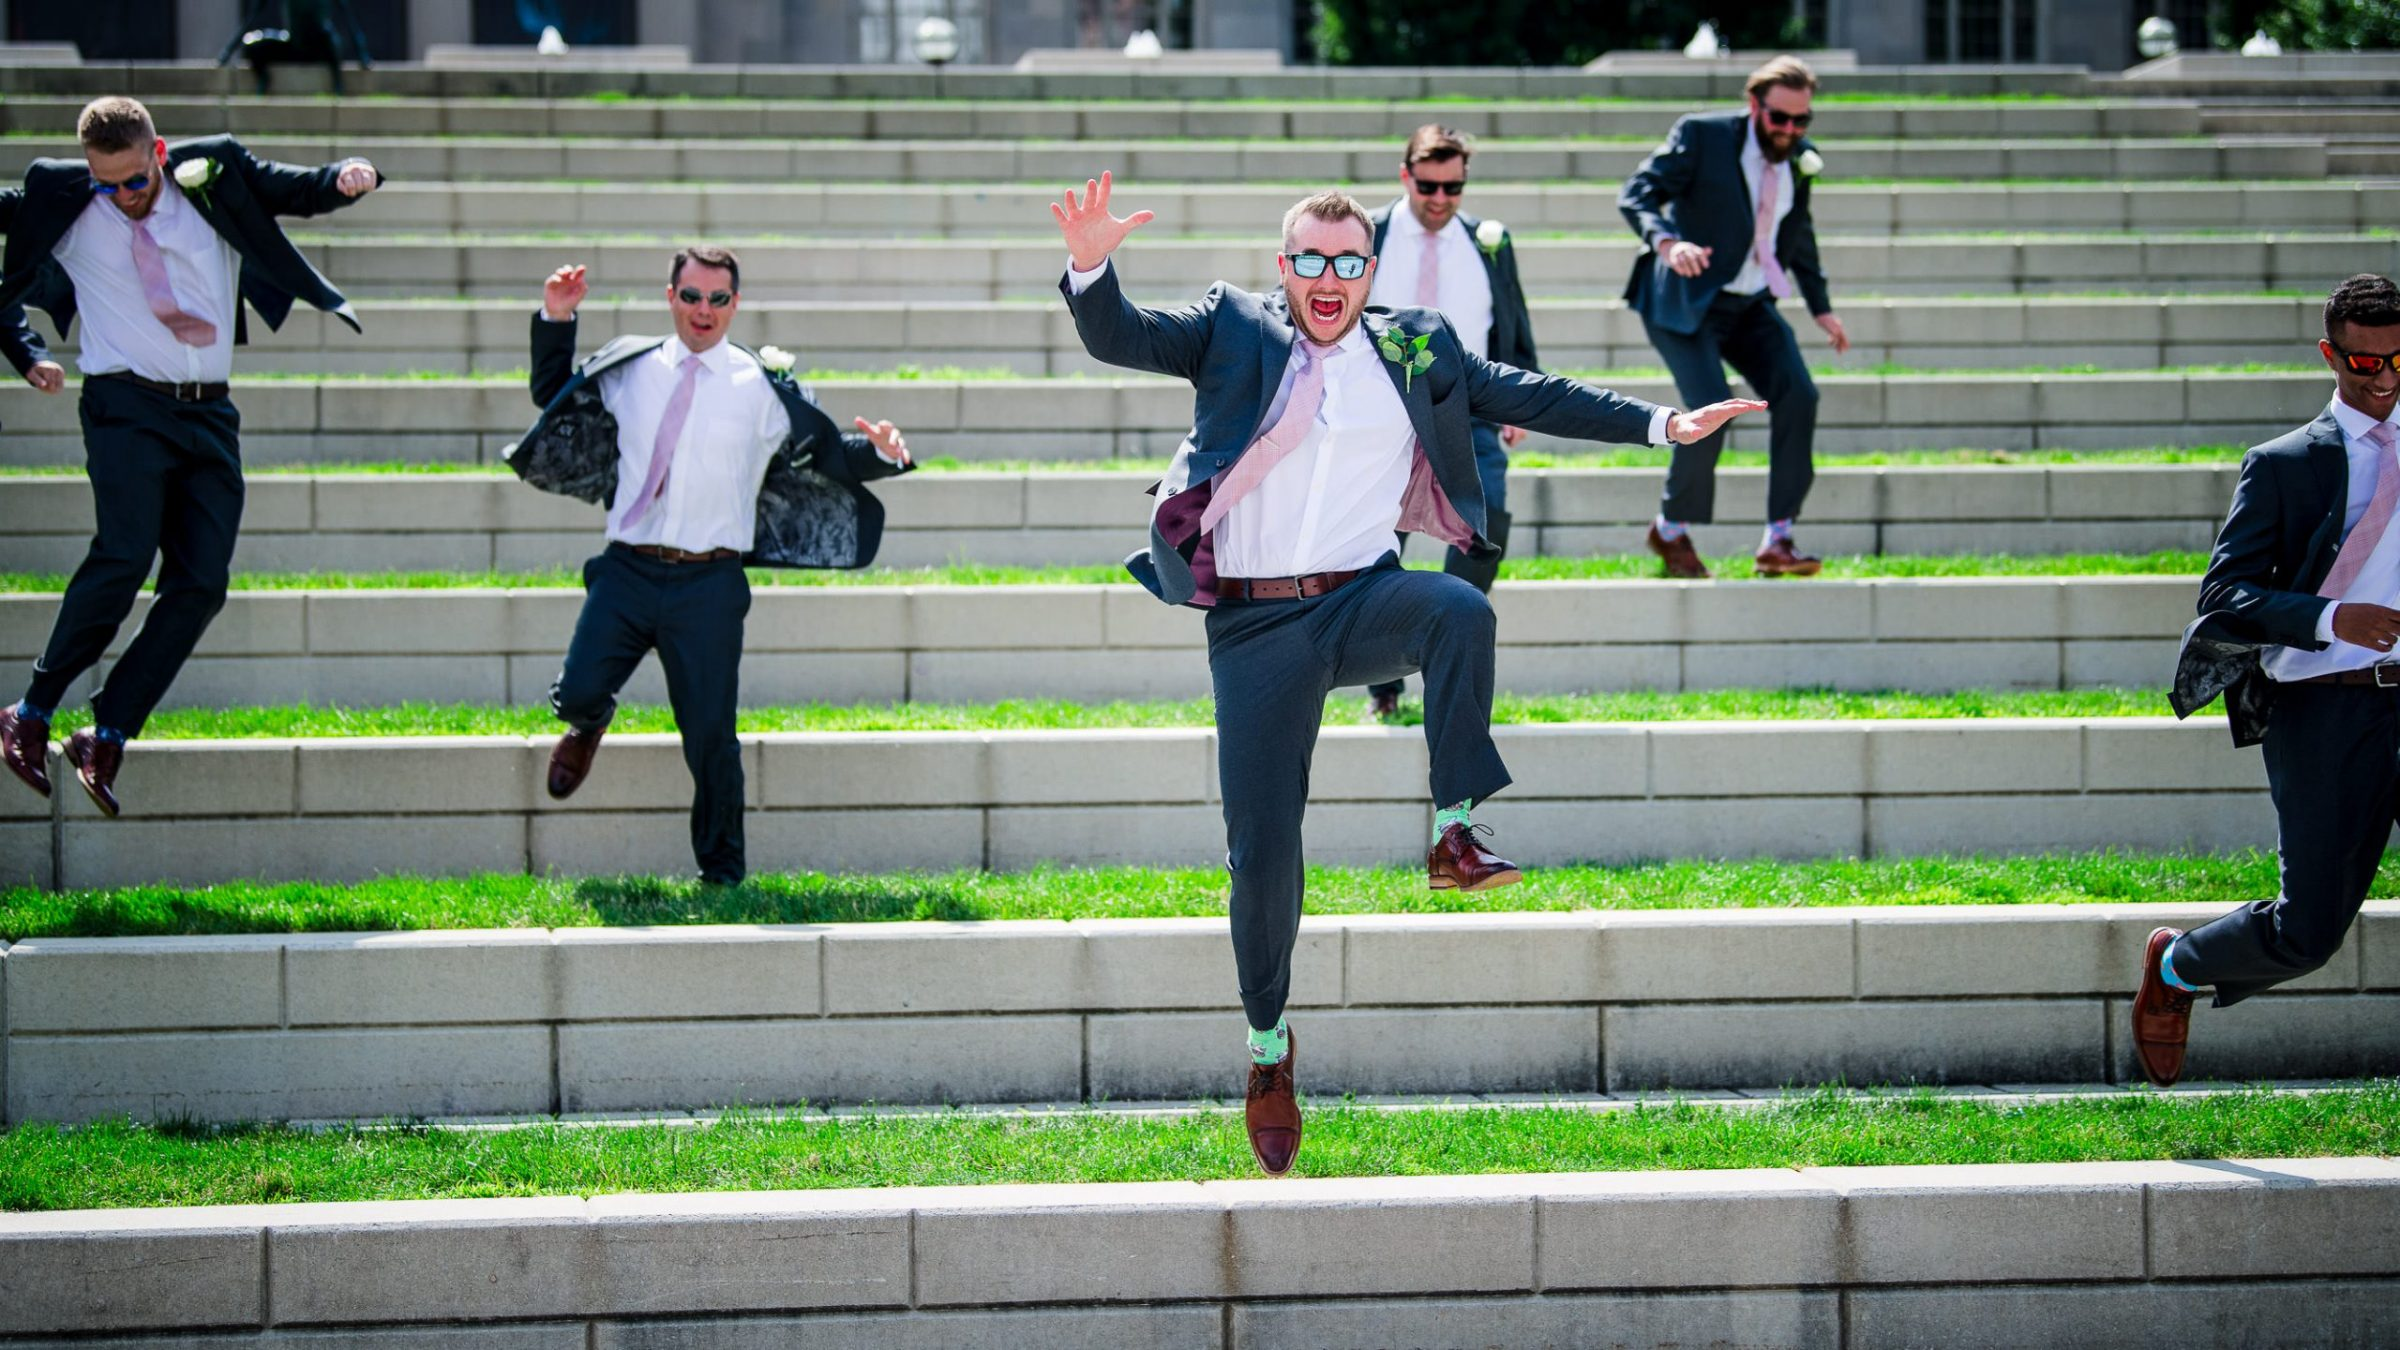 groom and groomsmen jumping down stairs